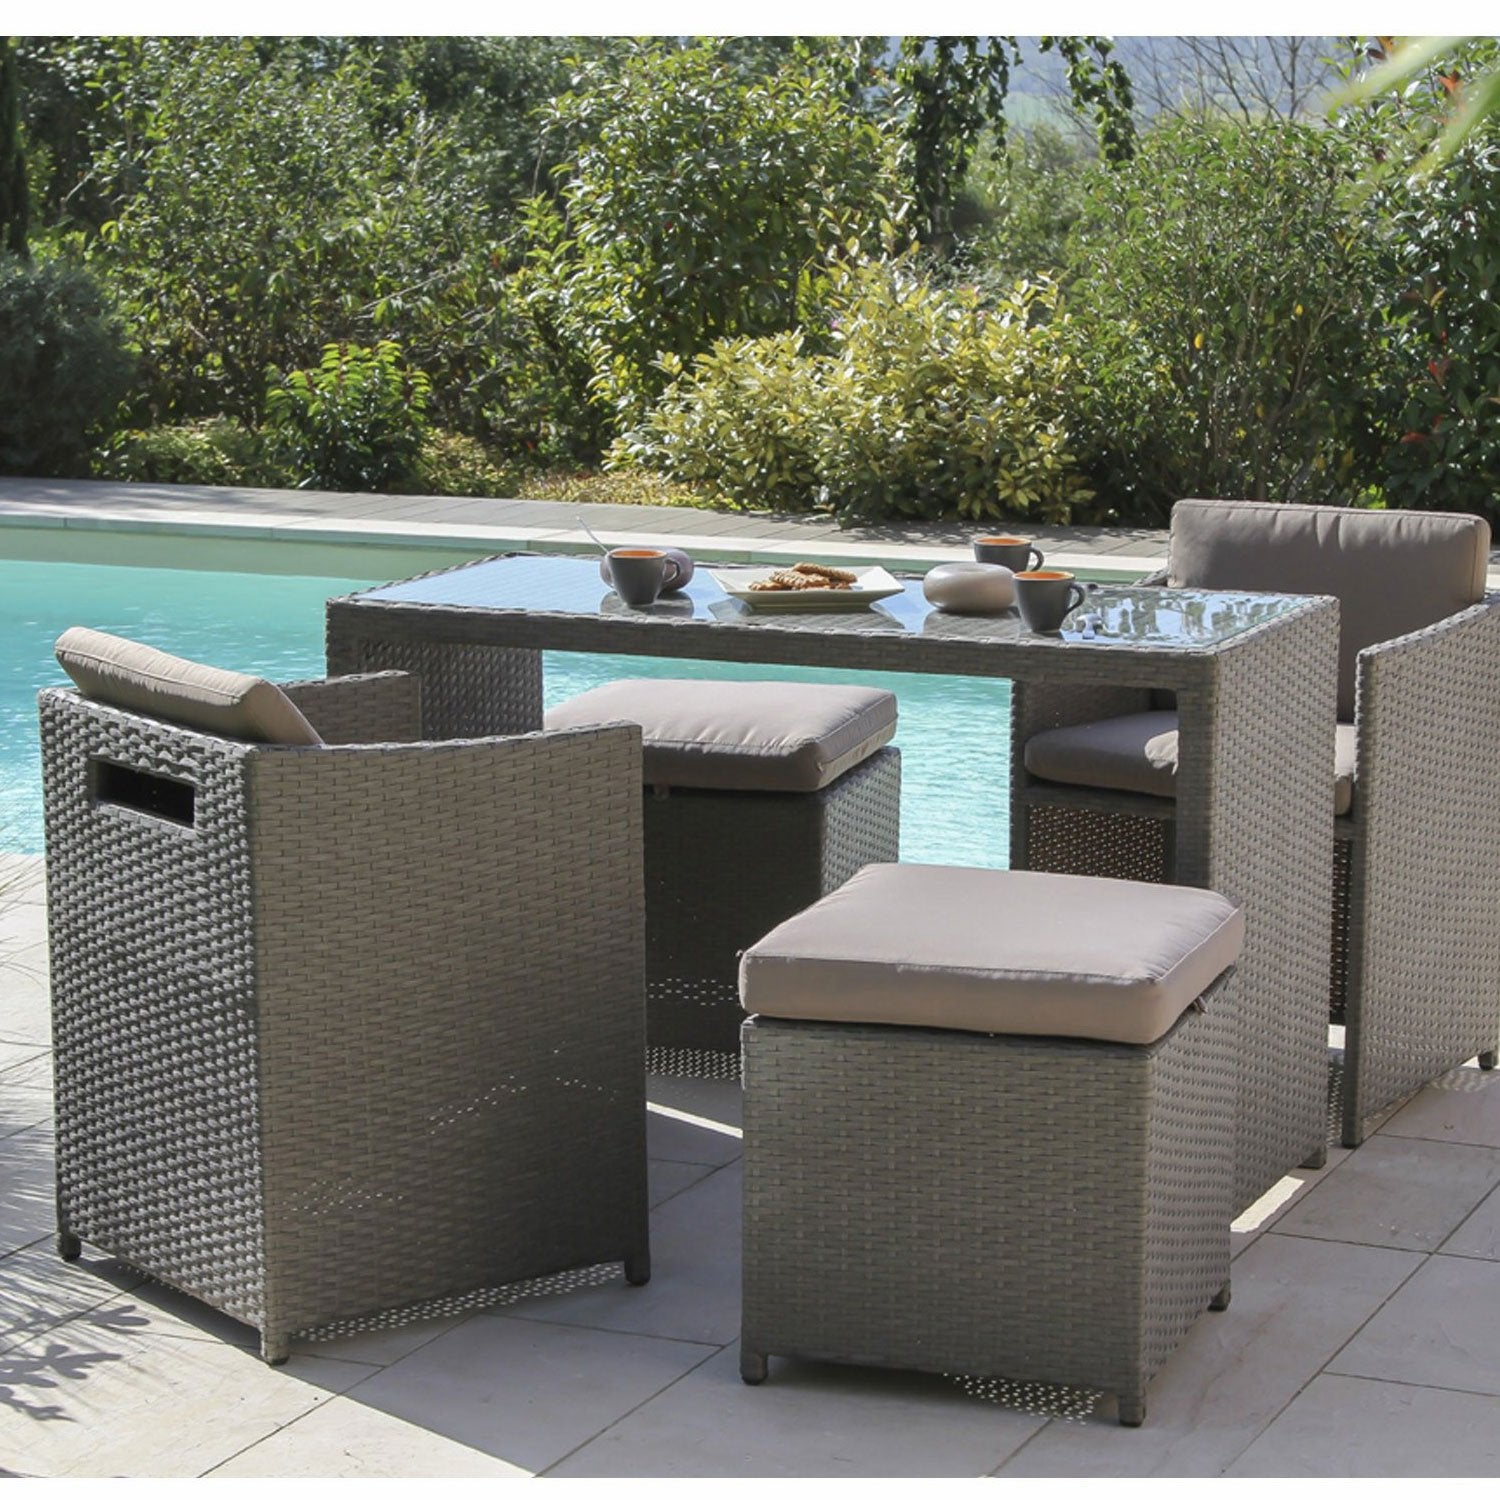 Salon de jardin foggia r sine tress e gris 1 table 2 - Salons de jardin leroy merlin ...